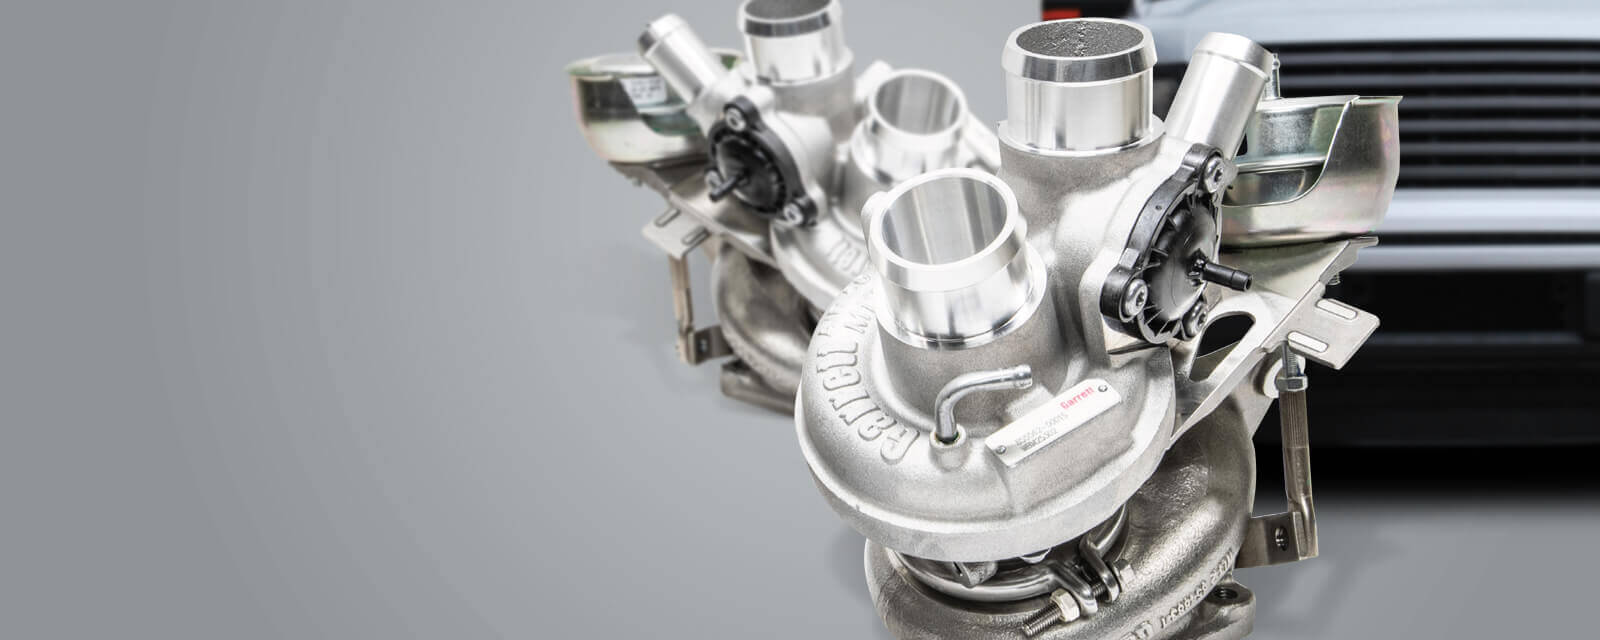 2011-2017 EcoBoost Turbochargers from Garrett